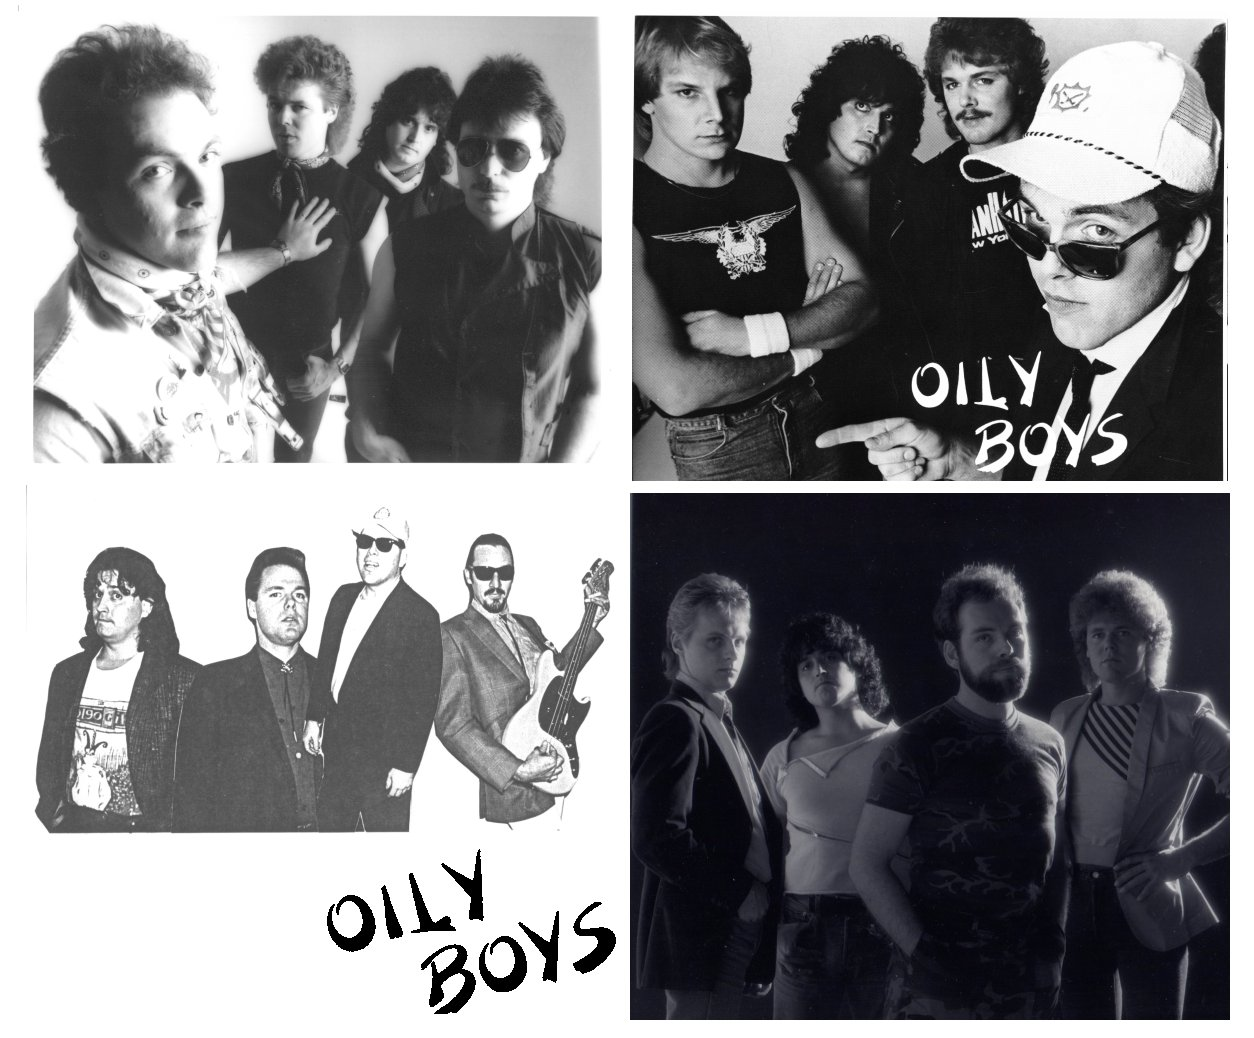 The Fabulous Oily Boys